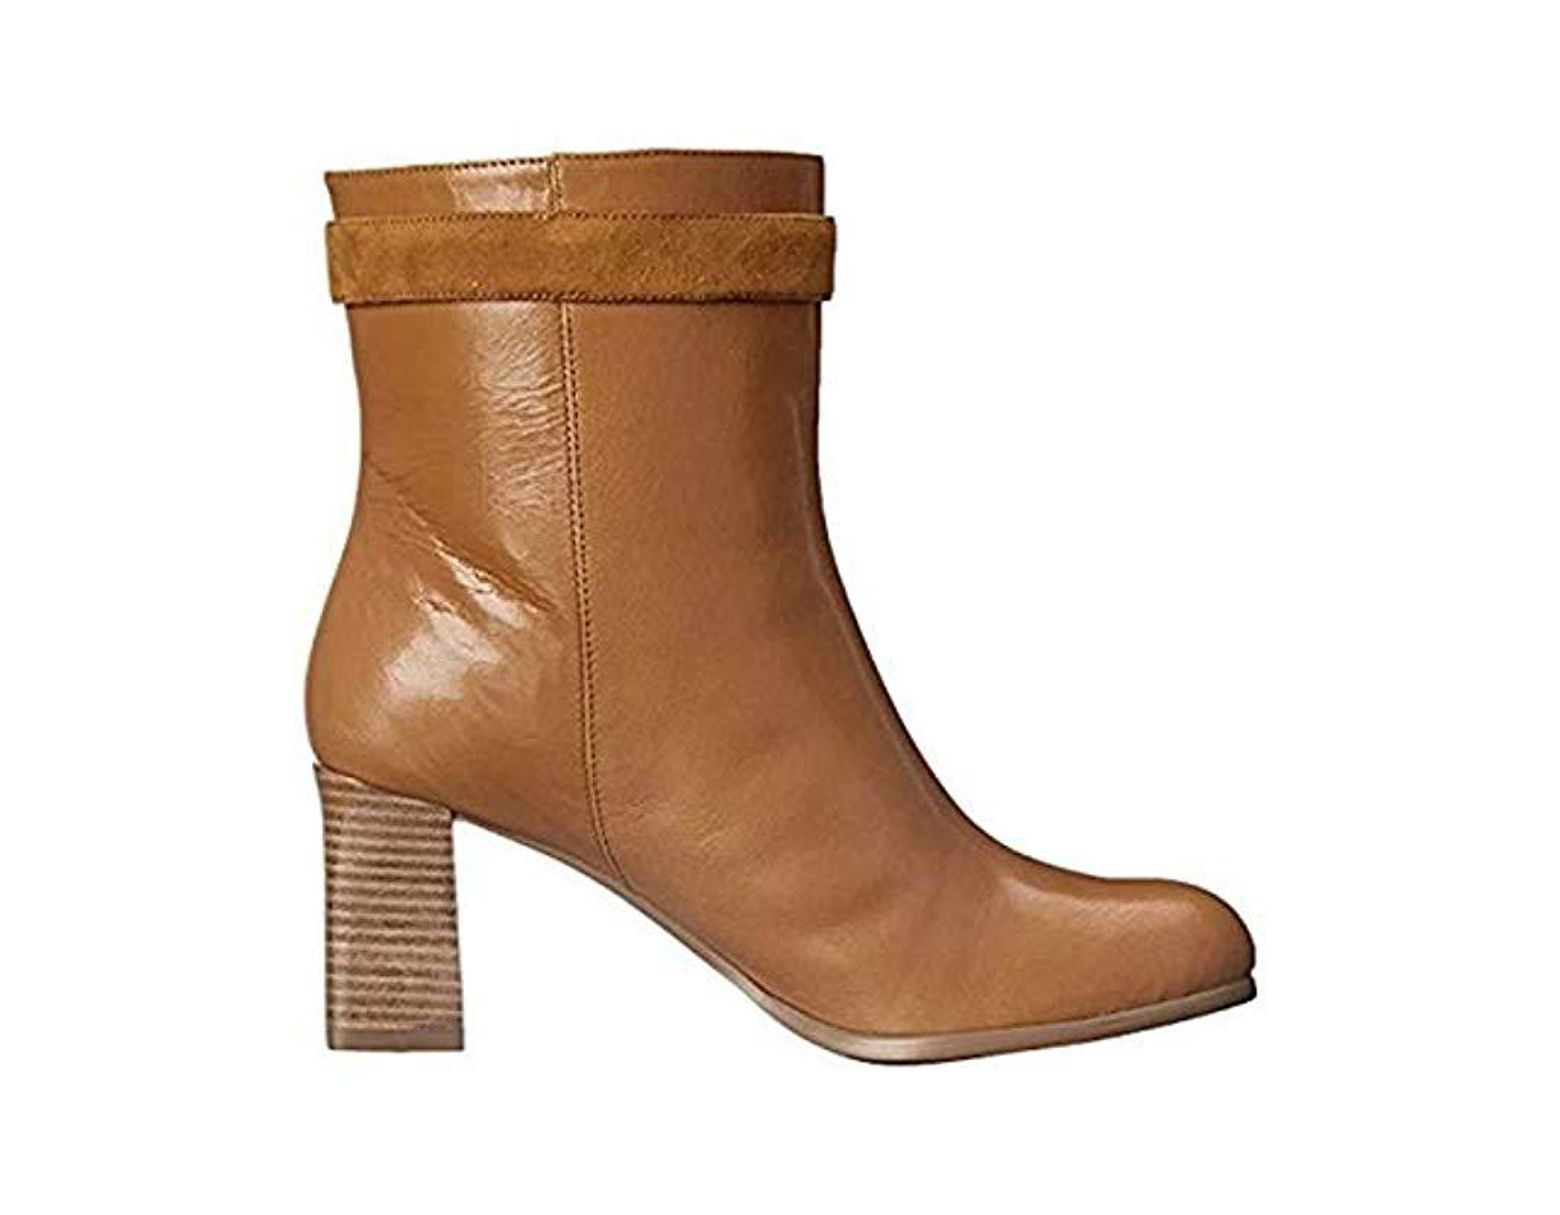 Leather West Boot Intimidation Nine West West Boot Leather Intimidation Nine Nine rxBdCWoe